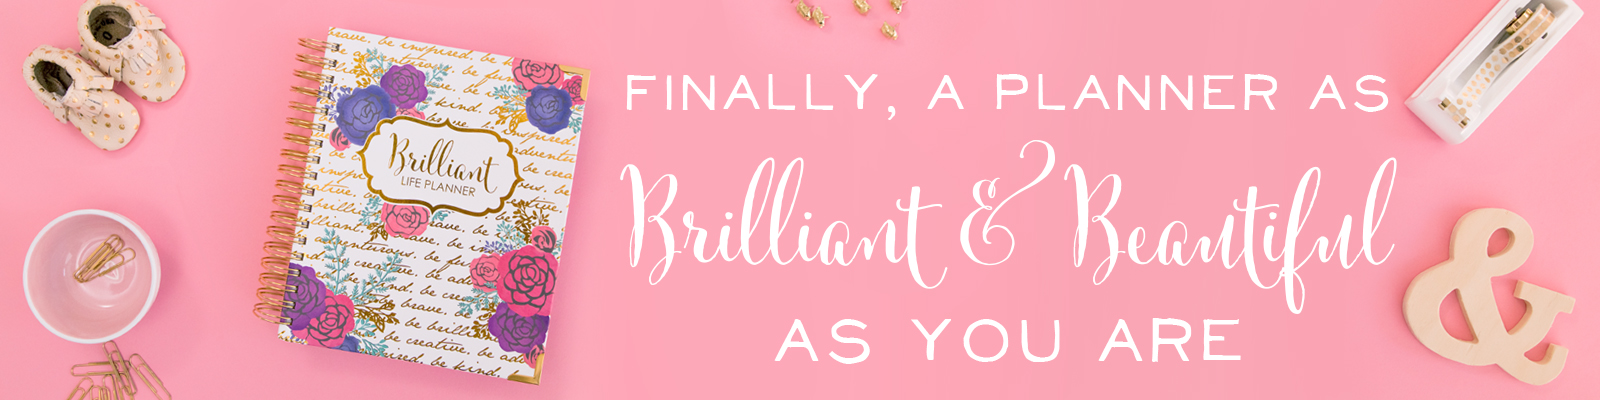 Finally, a planner as brilliant and beautiful as you are! Get the 2019 Brilliant Life Planner and flourish this year.